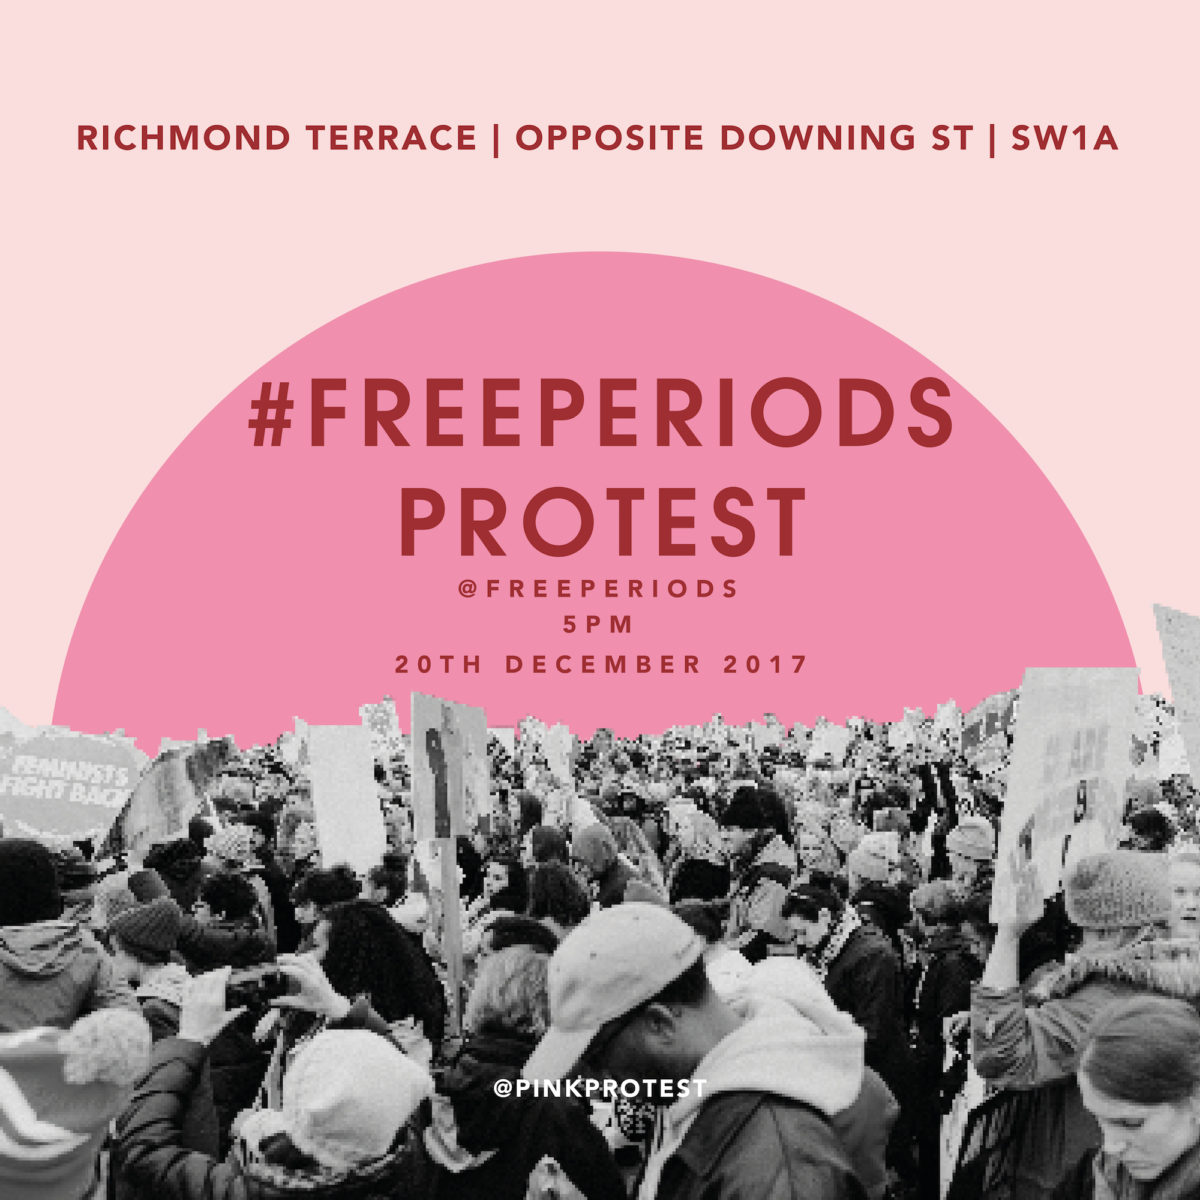 Callaly #freeperiods protest